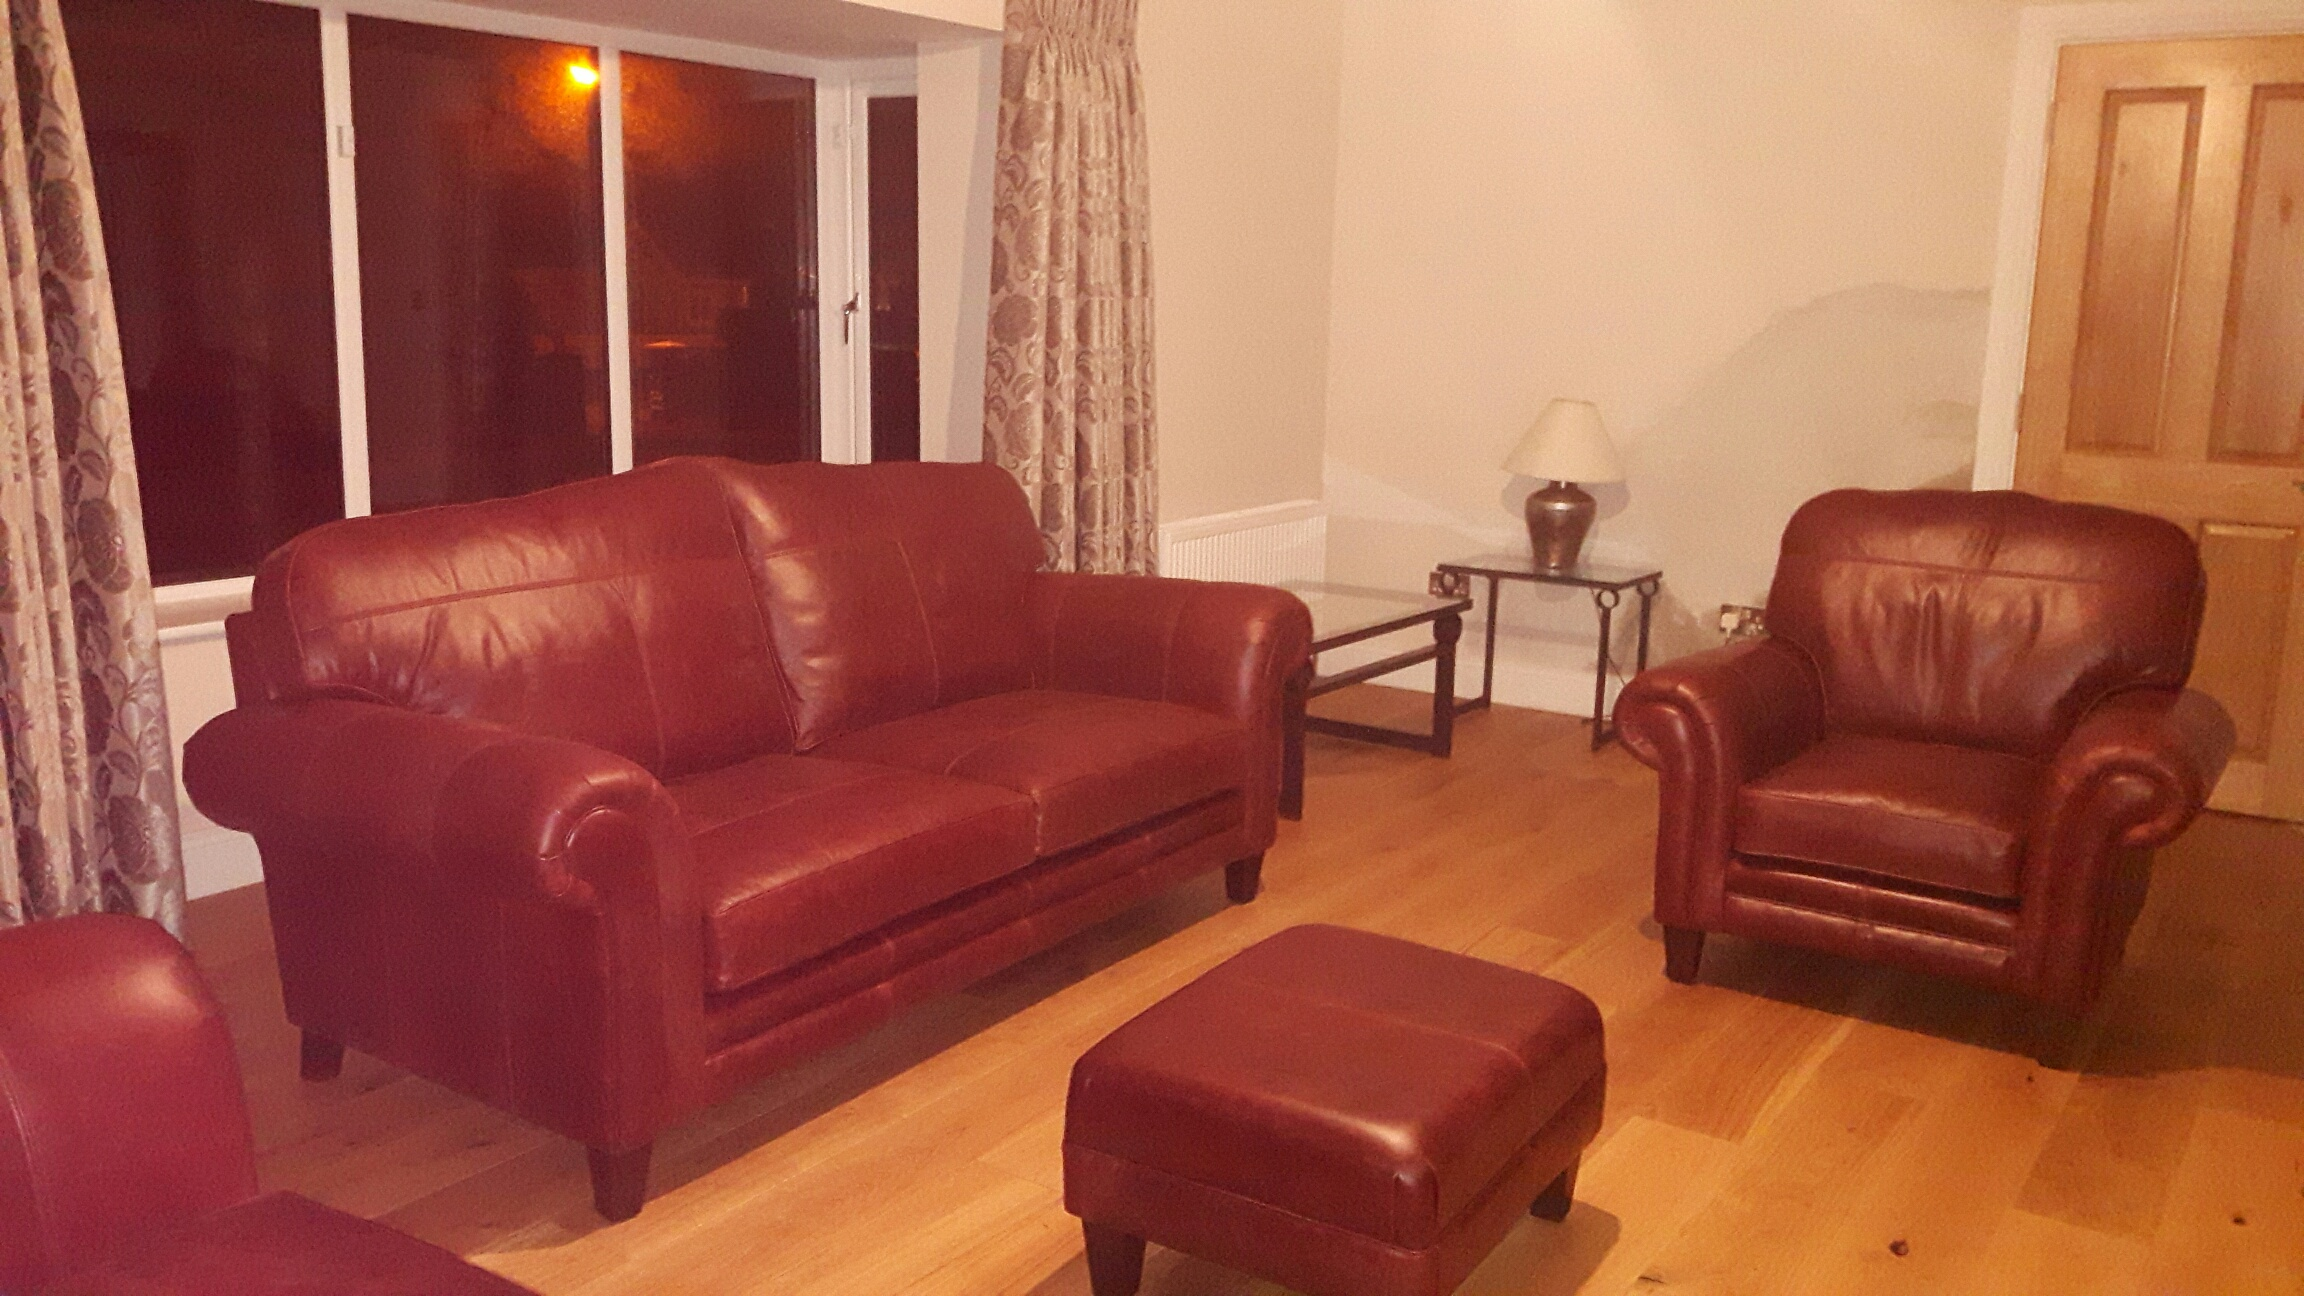 Leather Louis Group & Costa Footstool - Mustang Chestnut